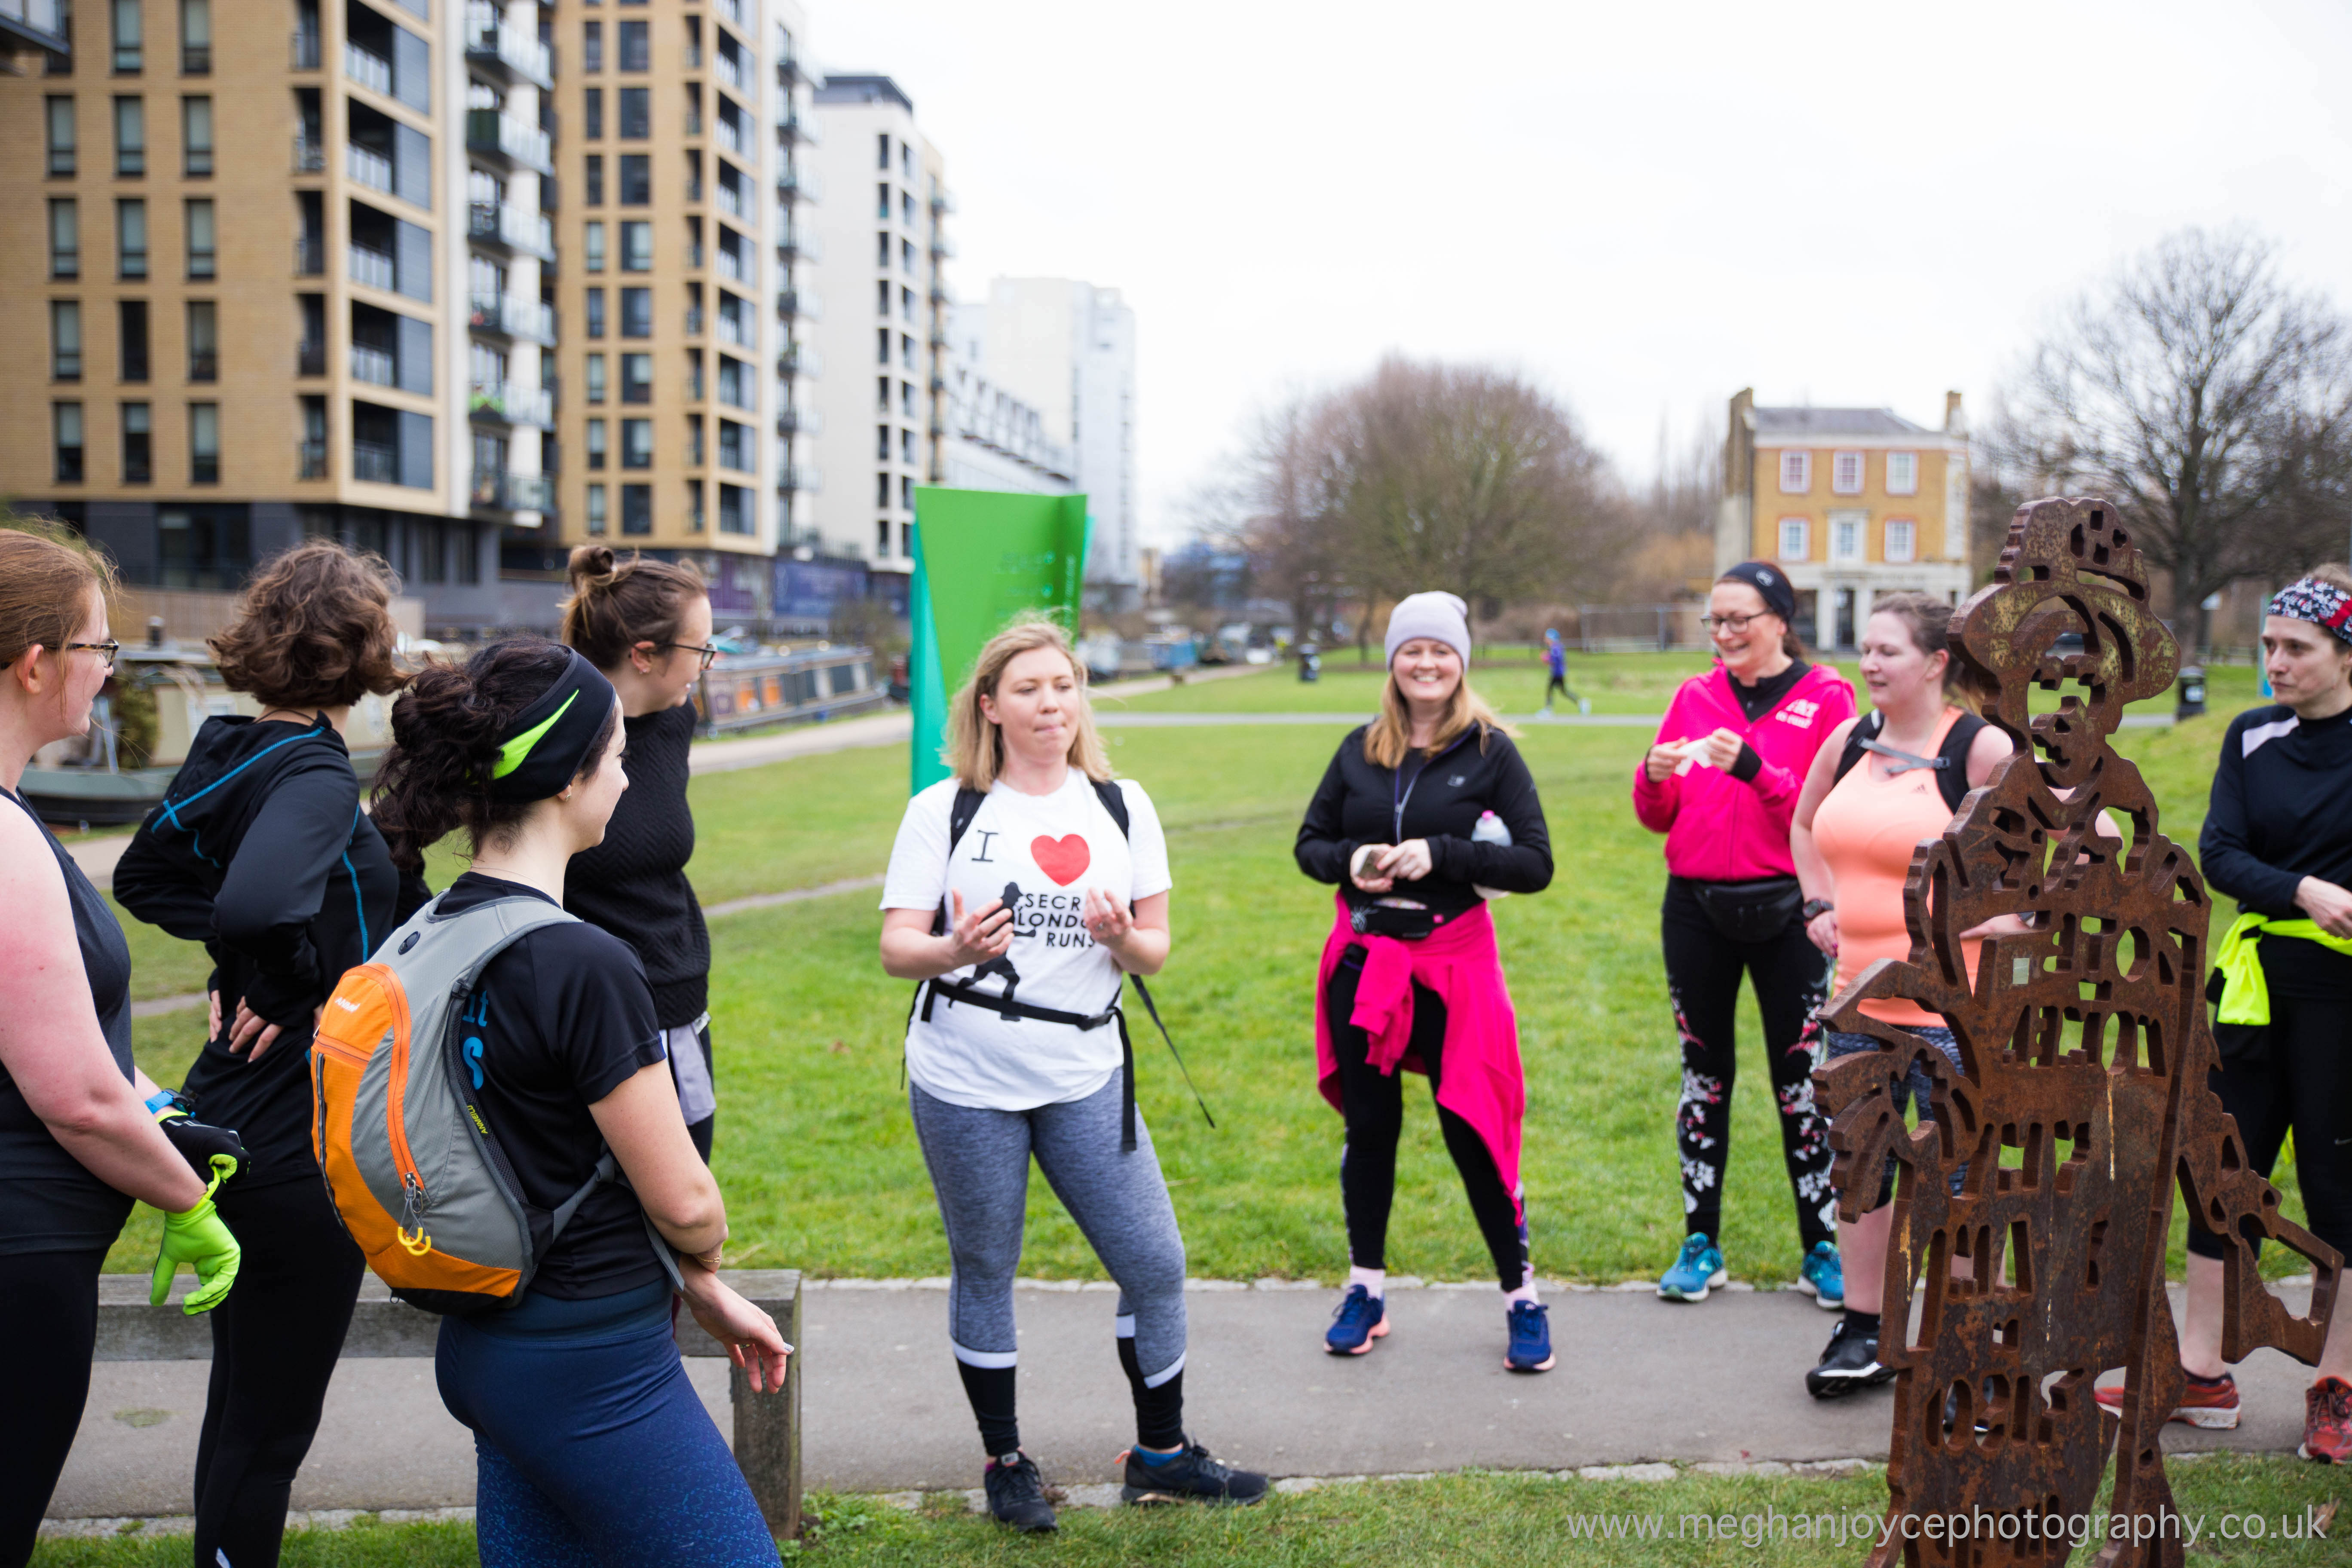 Power Women of the East End - Running Tour of London